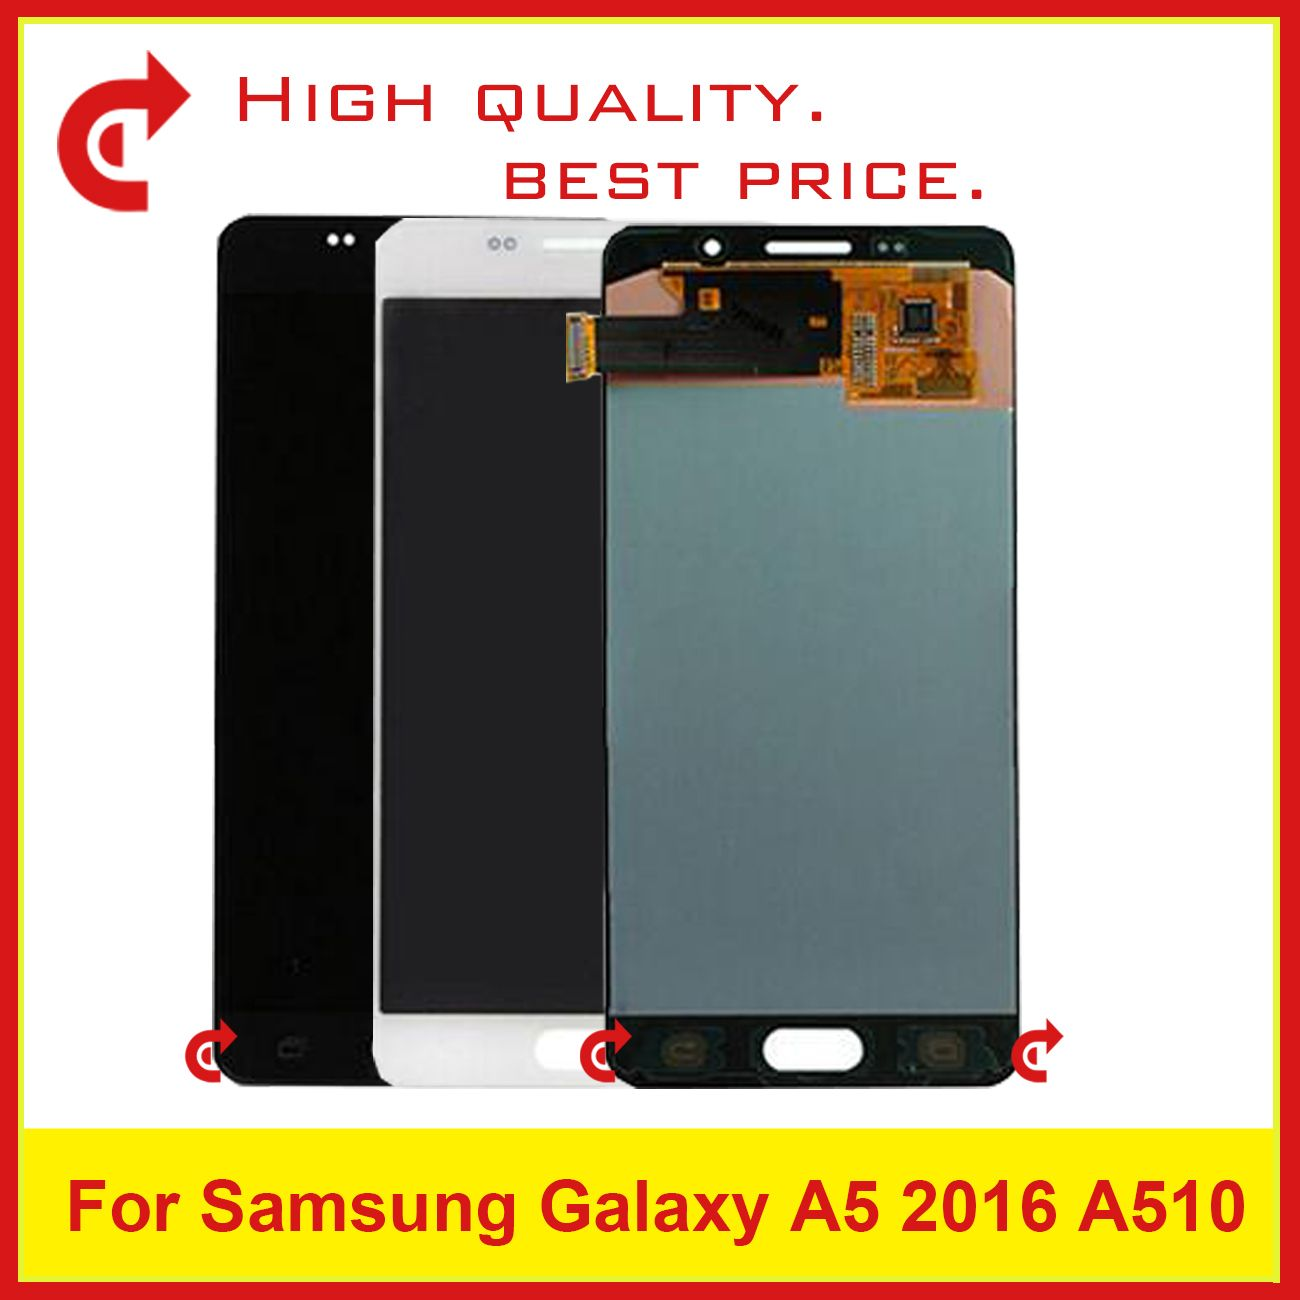 10Pcs DHL For Samsung Galaxy A5 2016 A510 A510F A510M A510FD A510Y Lcd Display With Touch Screen Digitizer Assembly Complete